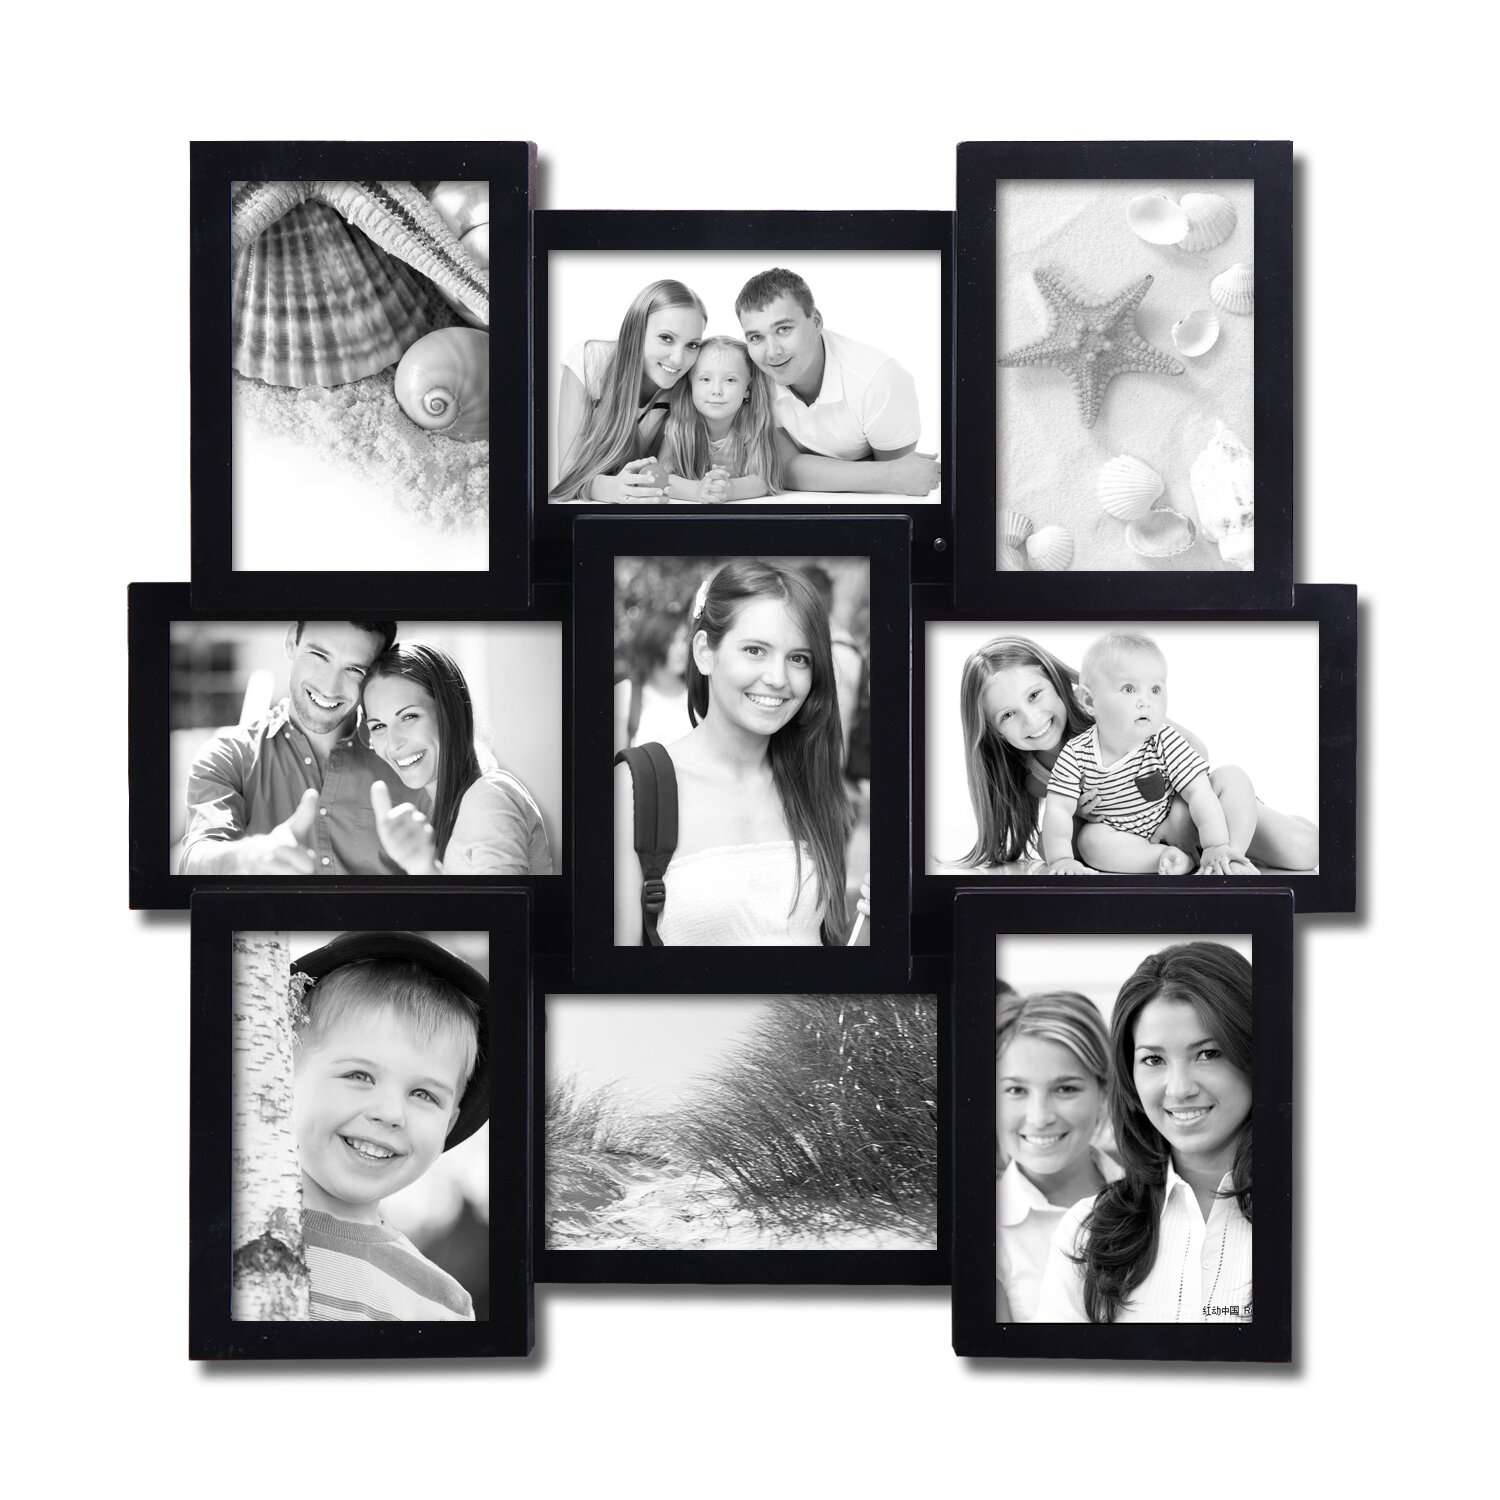 9 opening decorative wall hanging collage picture frame - Wall Hanging Photo Frames Designs